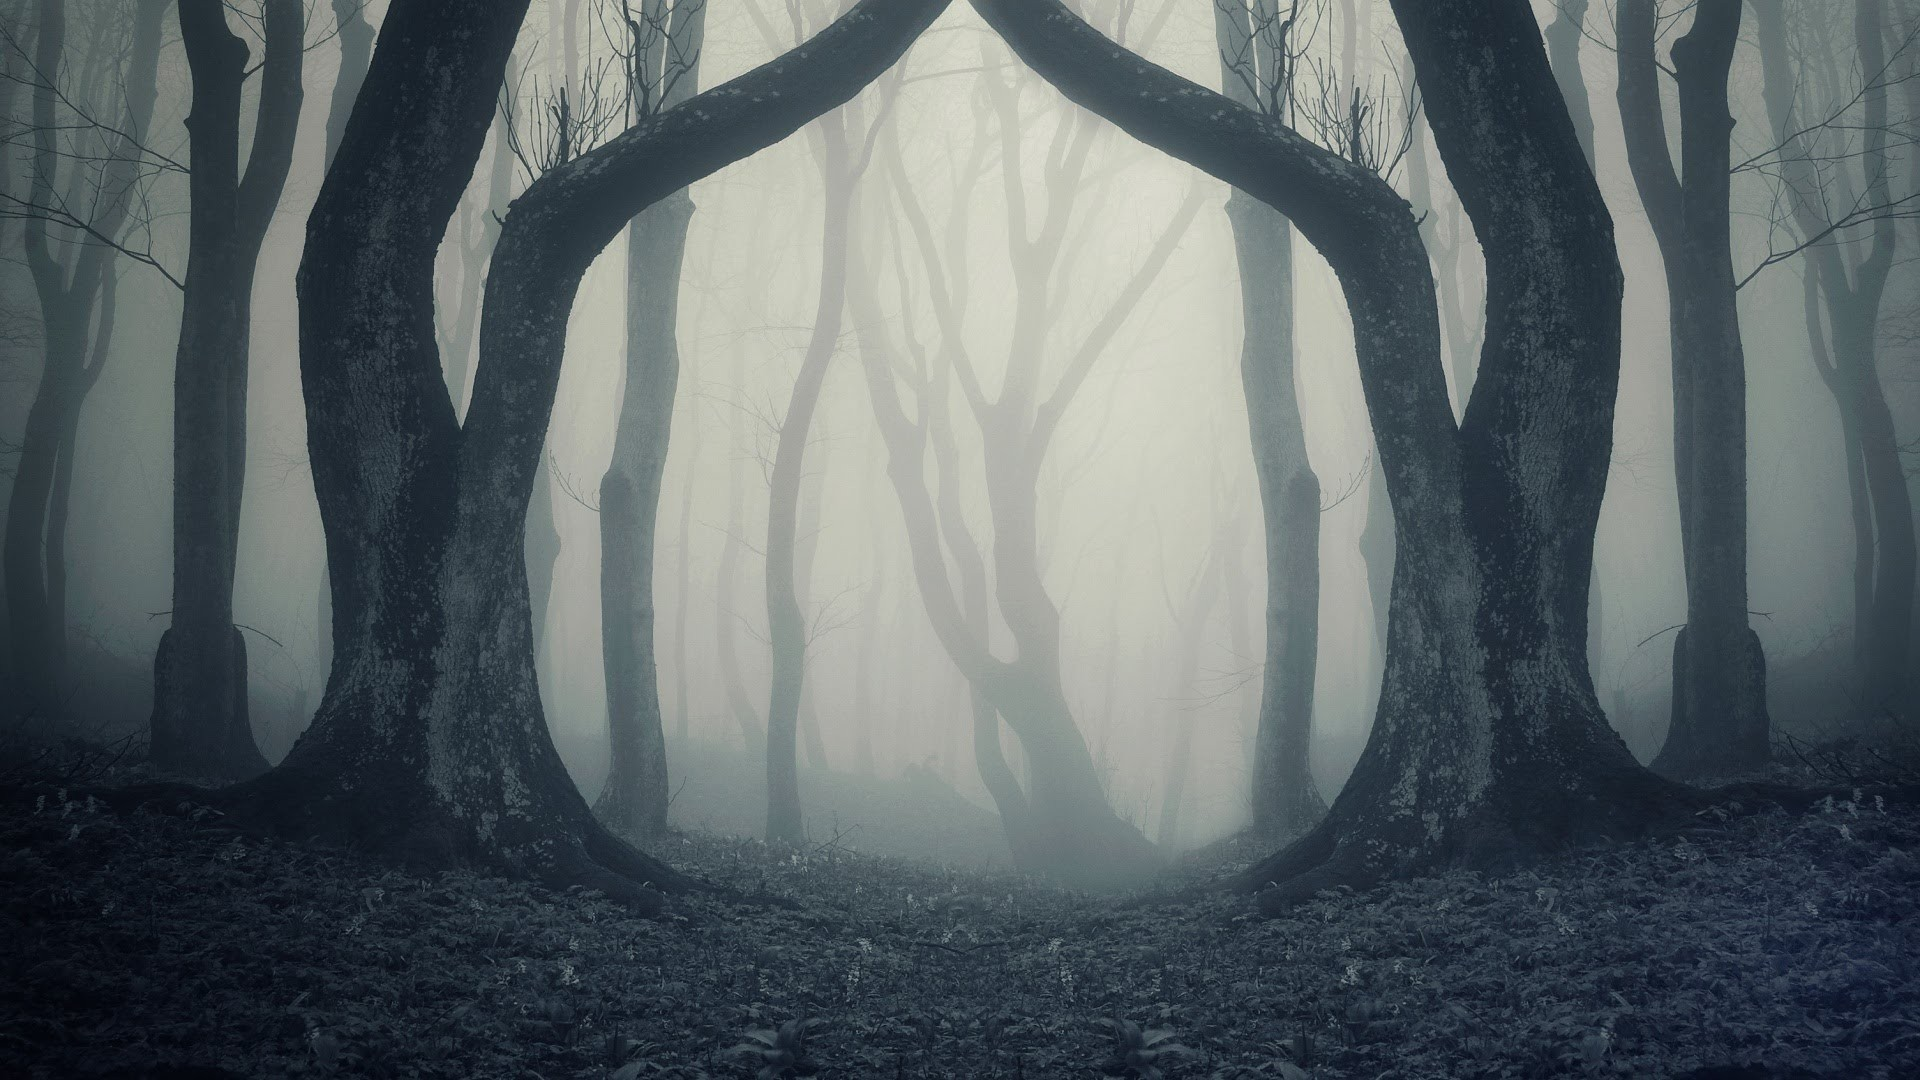 Creepy background ·① Download free stunning backgrounds for desktop and mobile devices in any ...